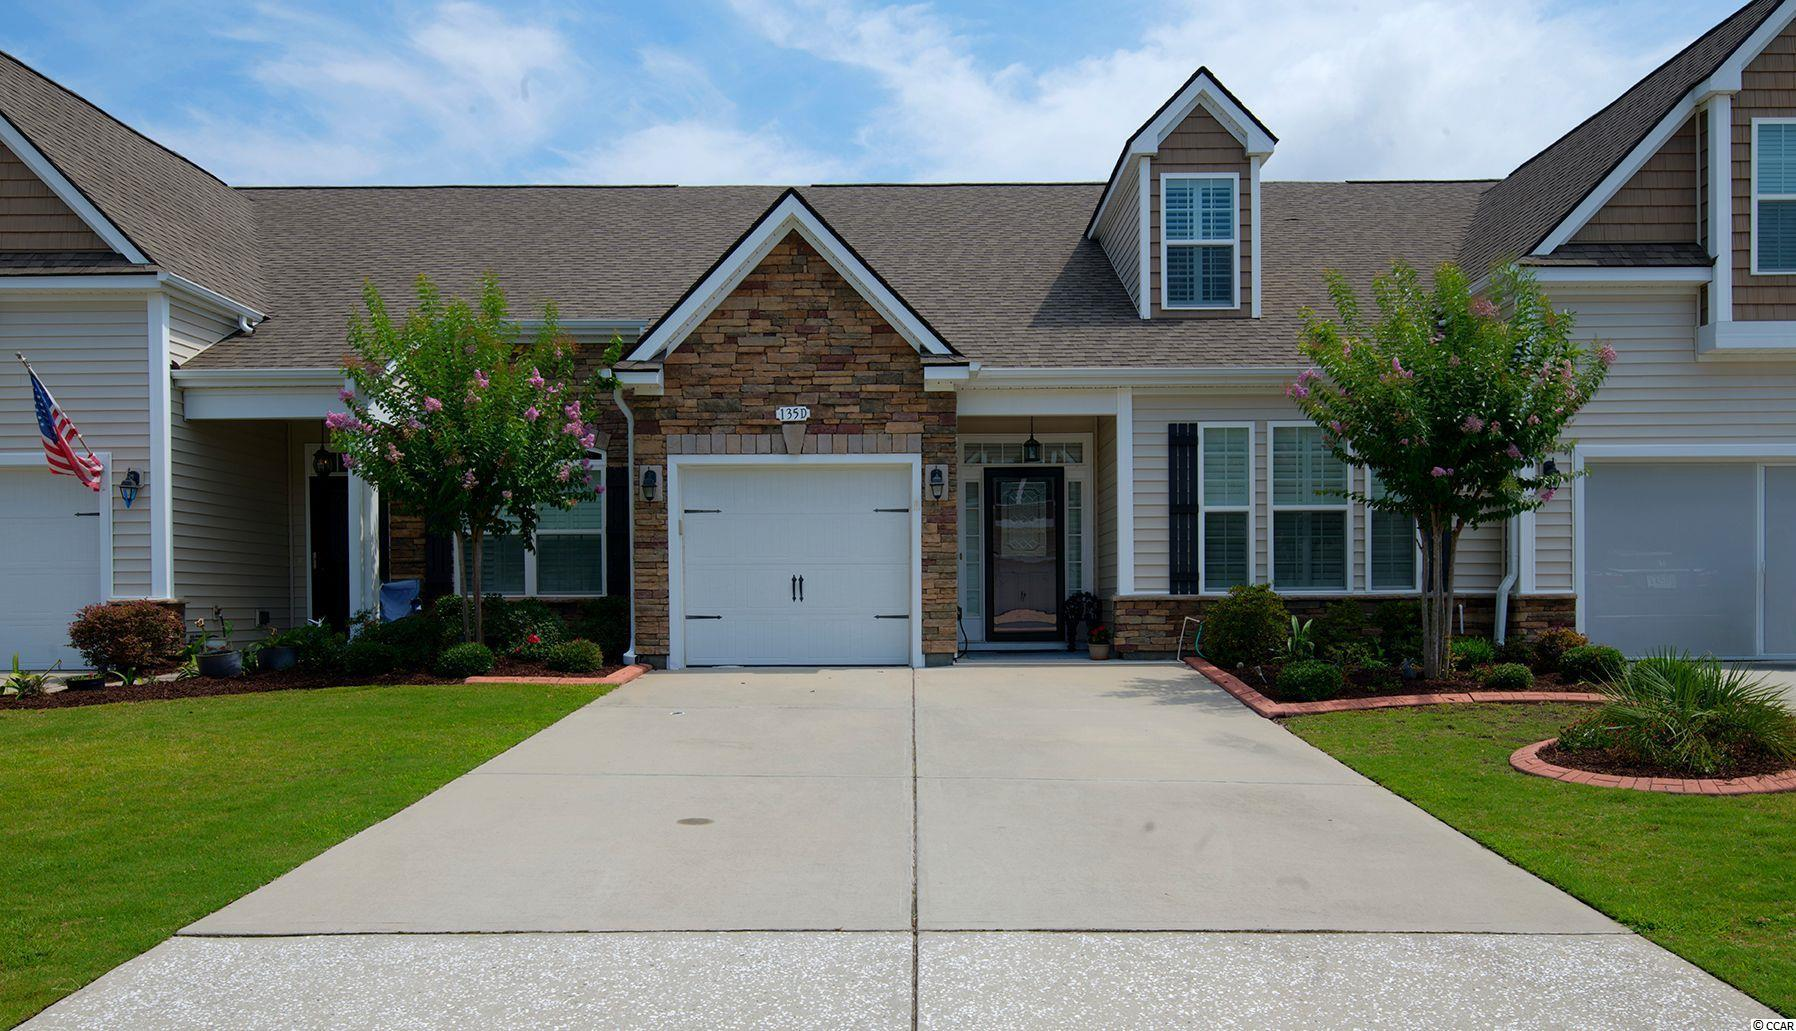 Beautiful townhome located in the desirable community of Parmelee. in Murrells Inlet.  Within 5 minutes to four golf courses, marina on Intracoastal waterway, local seafood restaurants, The Marshwalk and grocery Stores.  A quick drive to either Garden City Beach or Huntington Beach State Park. The WELLINGTON has 4 Bedrooms and 3 full Bathrooms. The spacious Owner's Suite and second bedroom are located on the first floor. The 3rd and 4th bedrooms are located upstairs along with a full Jack and Jill bath! This beautiful townhome has Shaw hardwood flooring, Daltile tile flooring, granite kitchen countertops.  GE stainless steel appliances, a natural gas hot water heater and many more upgrades! Home located on pond view lot .Natural Gas community with low HOA. Pool and clubhouse onsite!